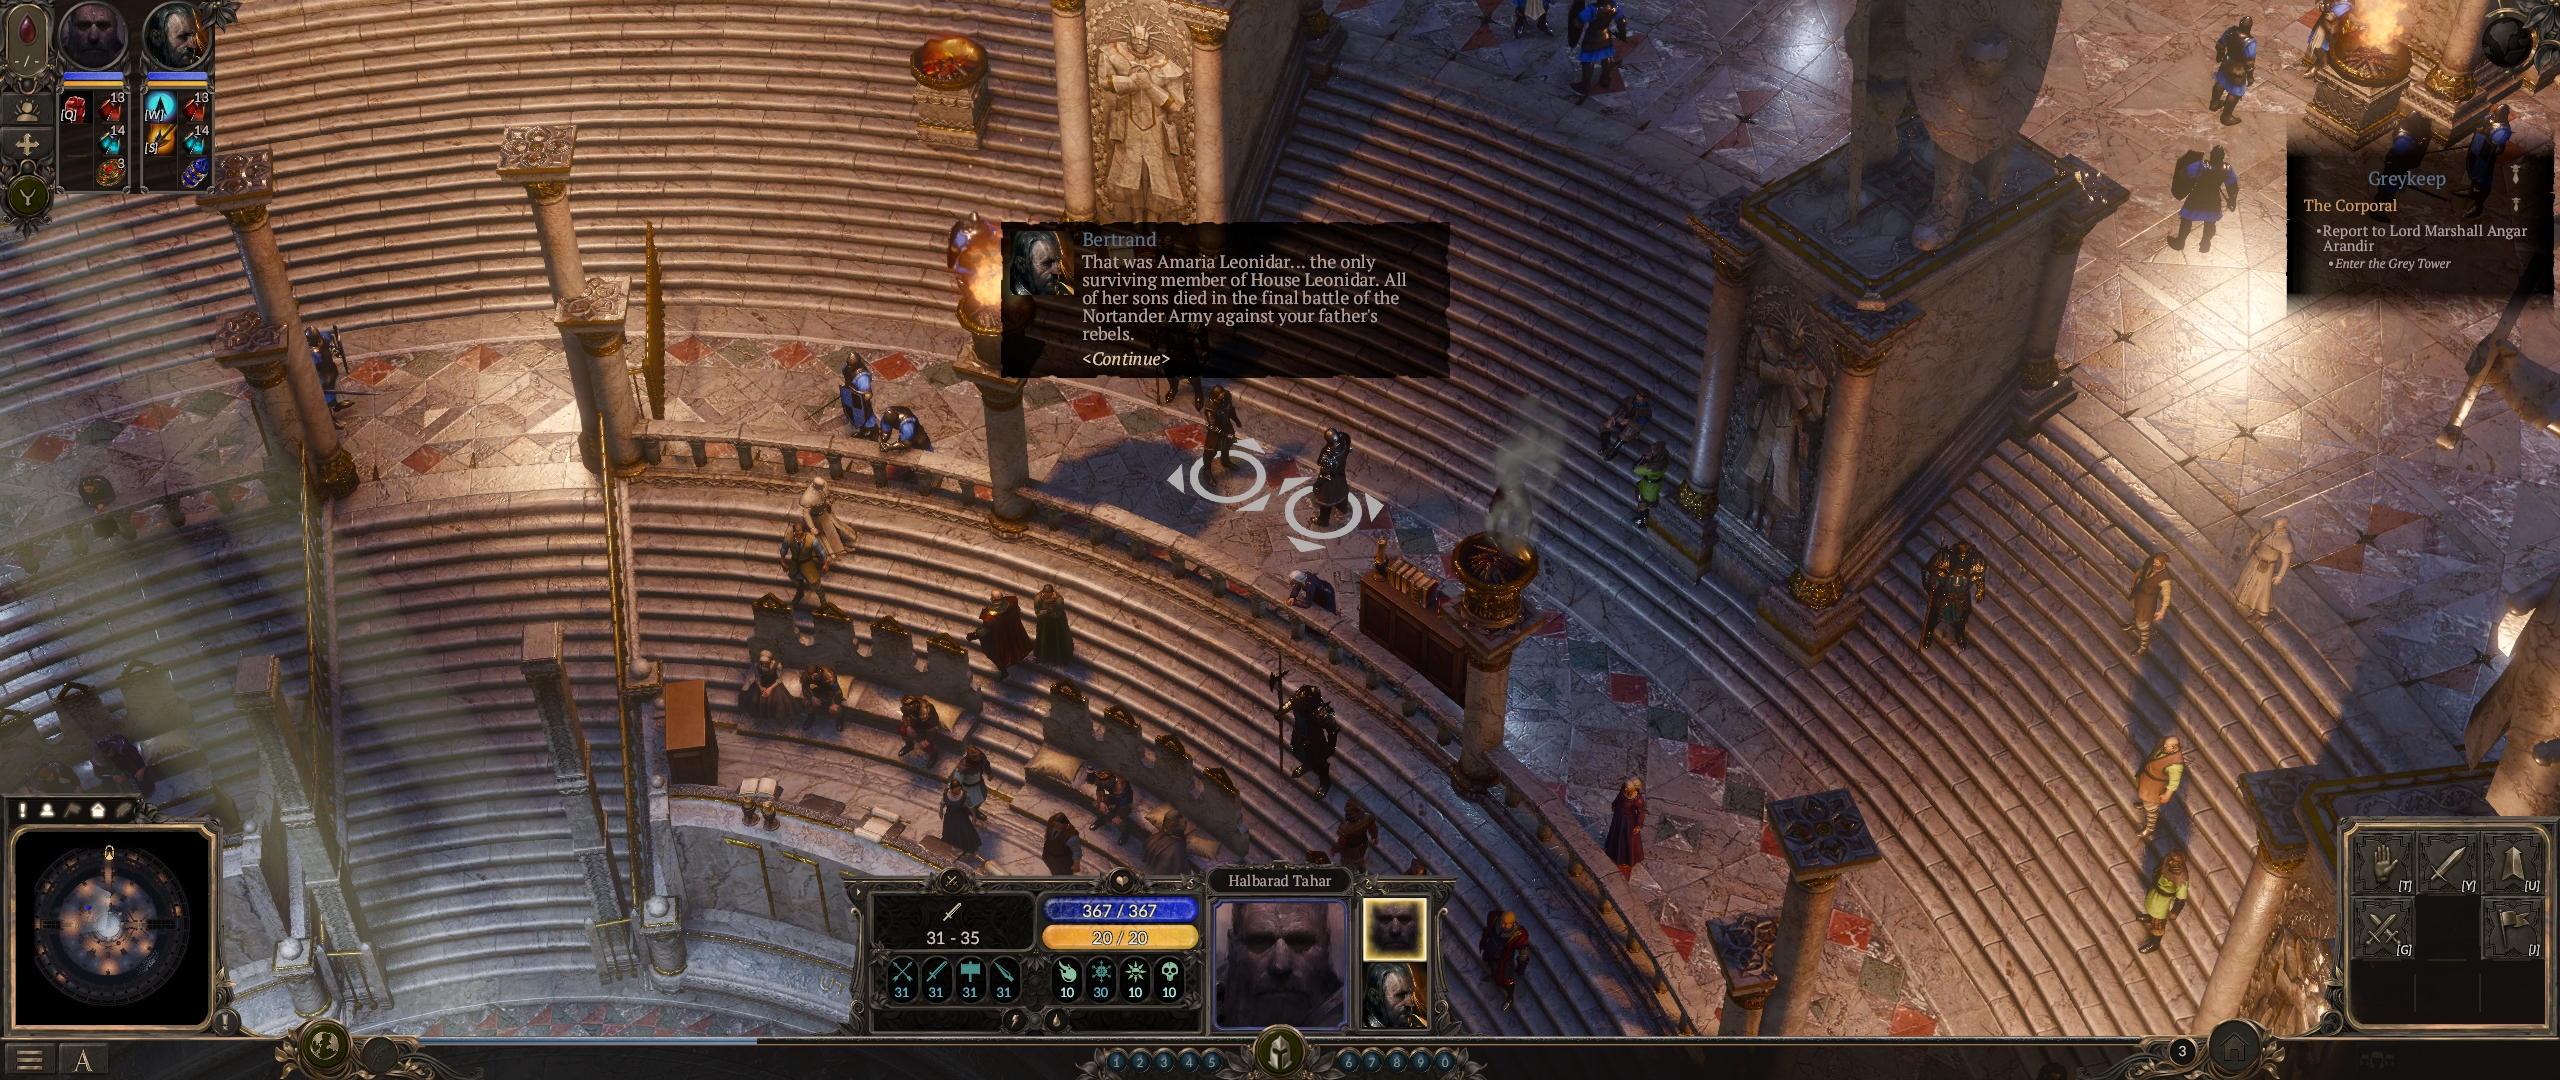 SpellForce 3 Review - Living in the Past  SpellForce 3 Re...